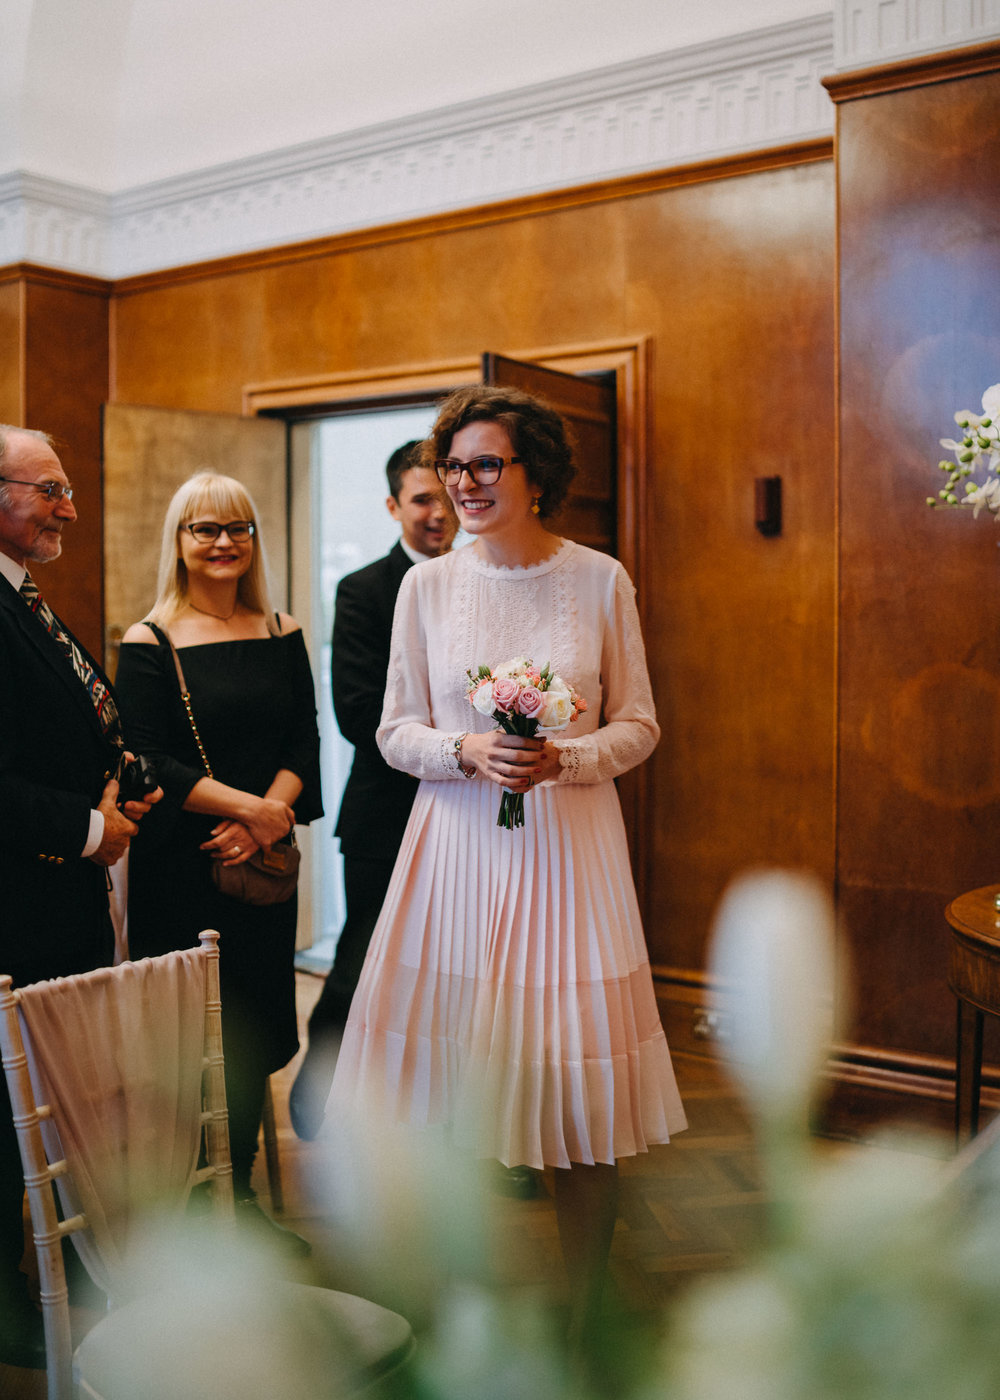 Hammersmith City Hall Wedding Photographer, London